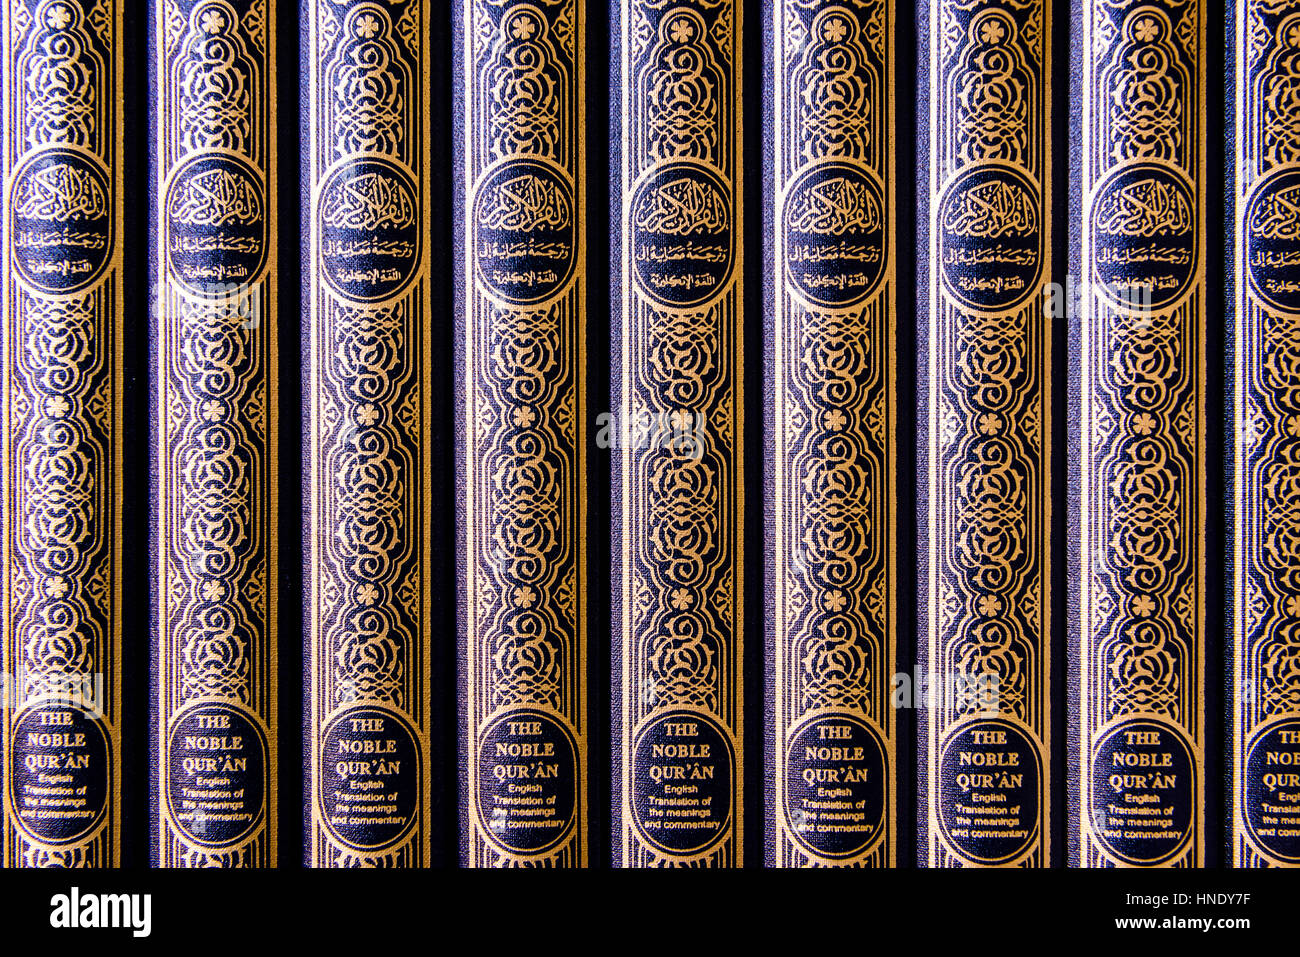 Copies of the Holy Qu'ran on shelves in a Mosque. - Stock Image